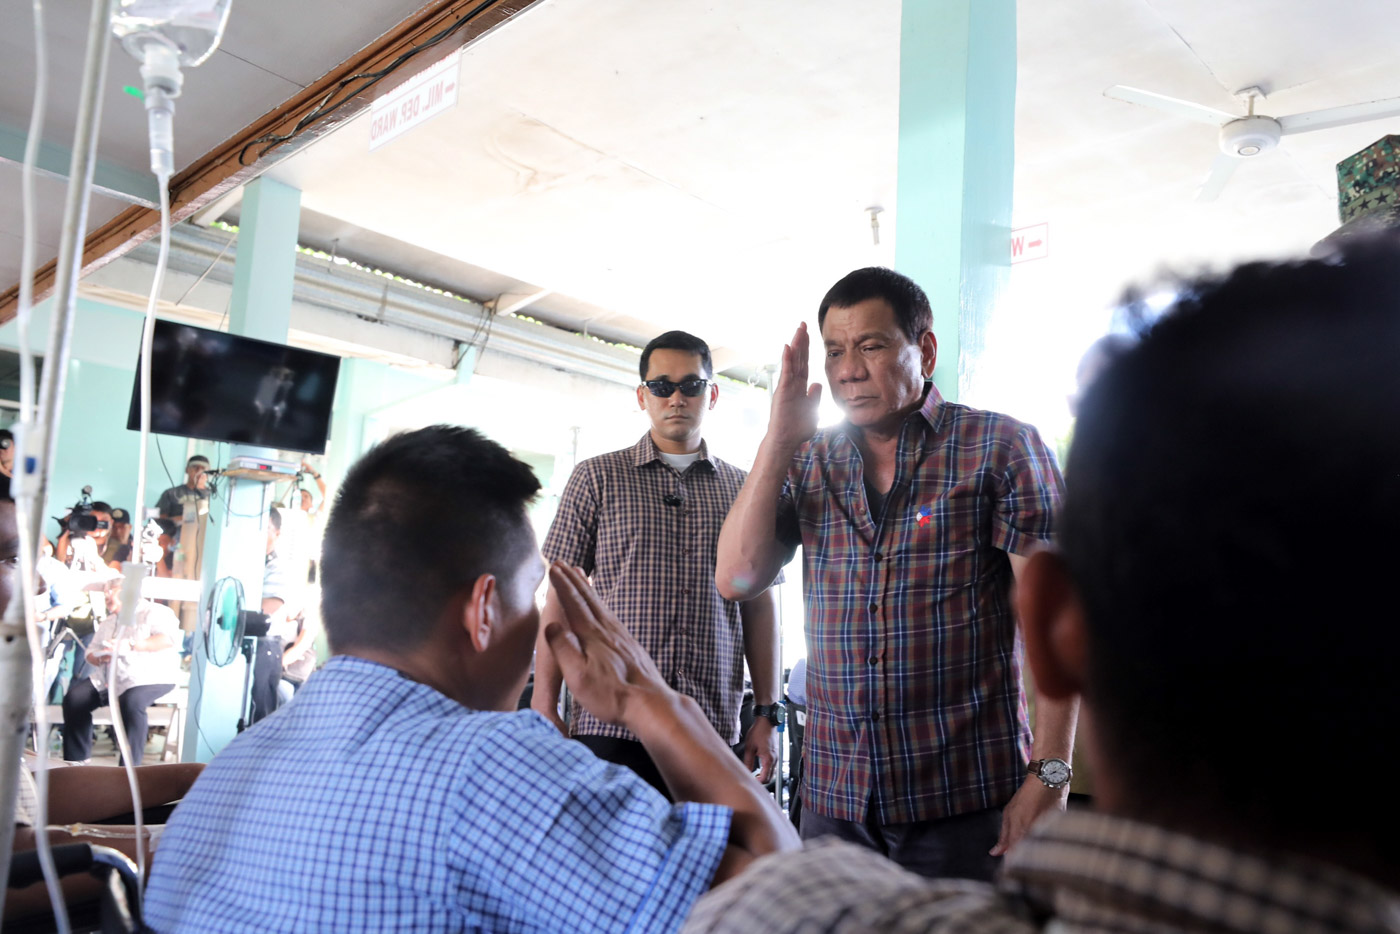 VISITING TROOPS. President Rodrigo Duterte visits soldiers wounded during clashes in Marawi City, June 11, 2017 in Cagayan de Oro. Malacau00f1ang photo